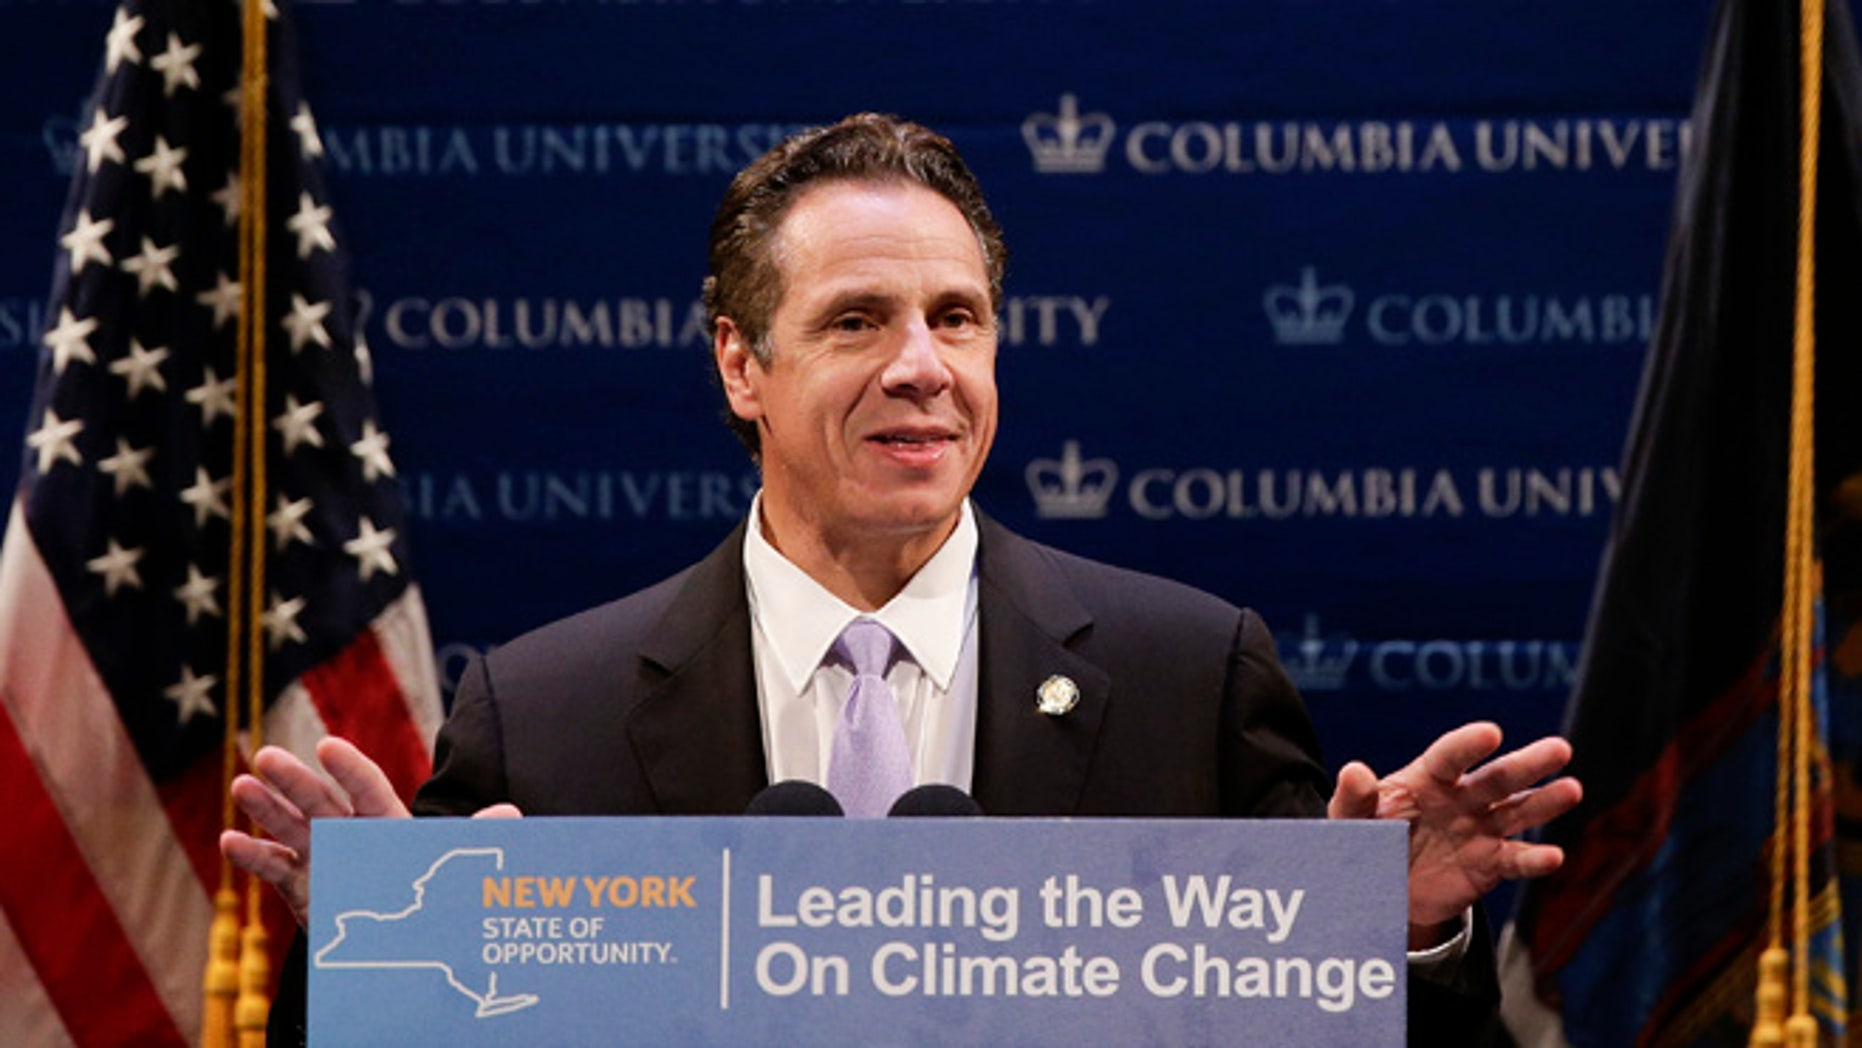 Oct. 8, 2015: New York Governor Andrew Cuomo announces New York's involvement in the Under 2 MOU coalition in New York.  (AP)